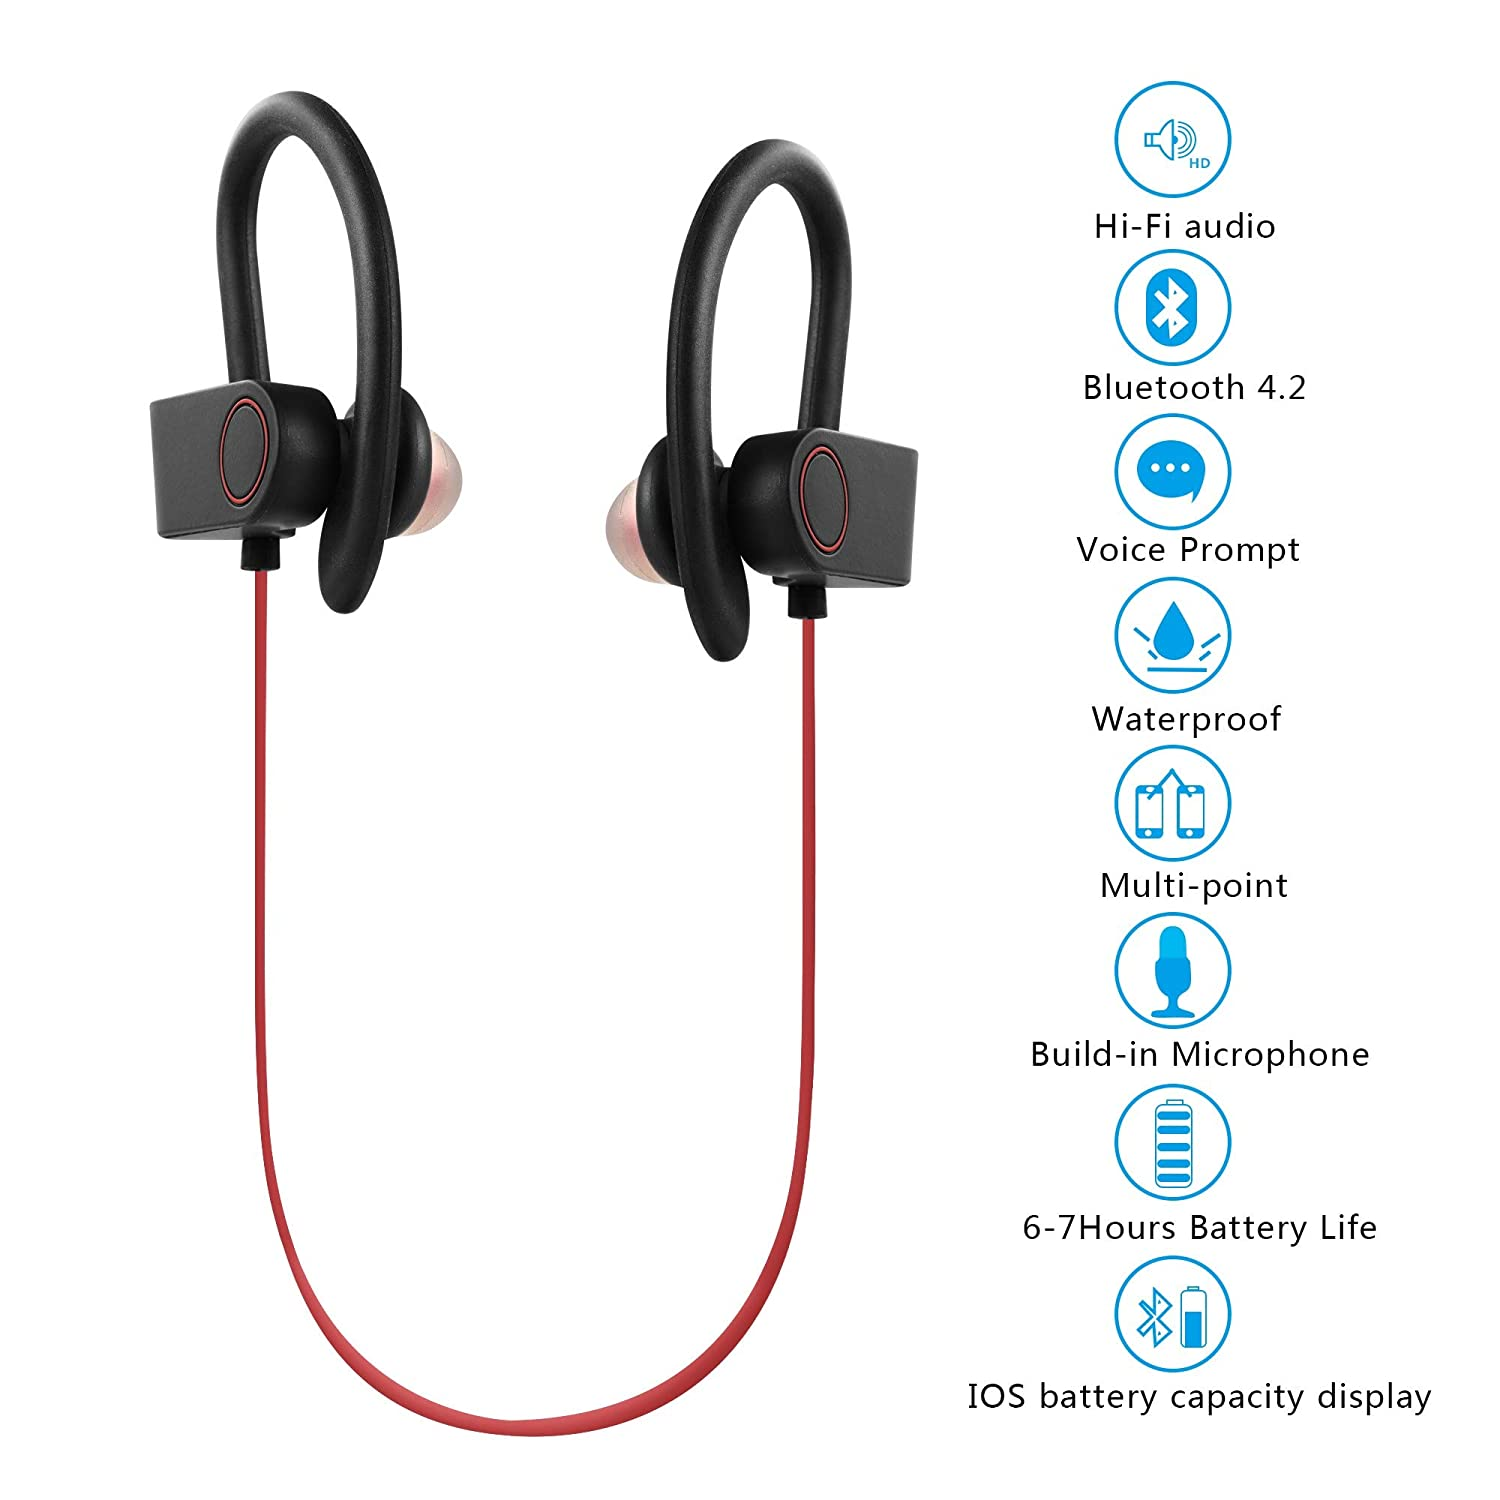 Wireless Bluetooth Headset Wireless Earbuds Sweatproof Sports Headphones with Charging Case Mini Size in-Ear Noise Canceling Phone Android Smart-10-26-4